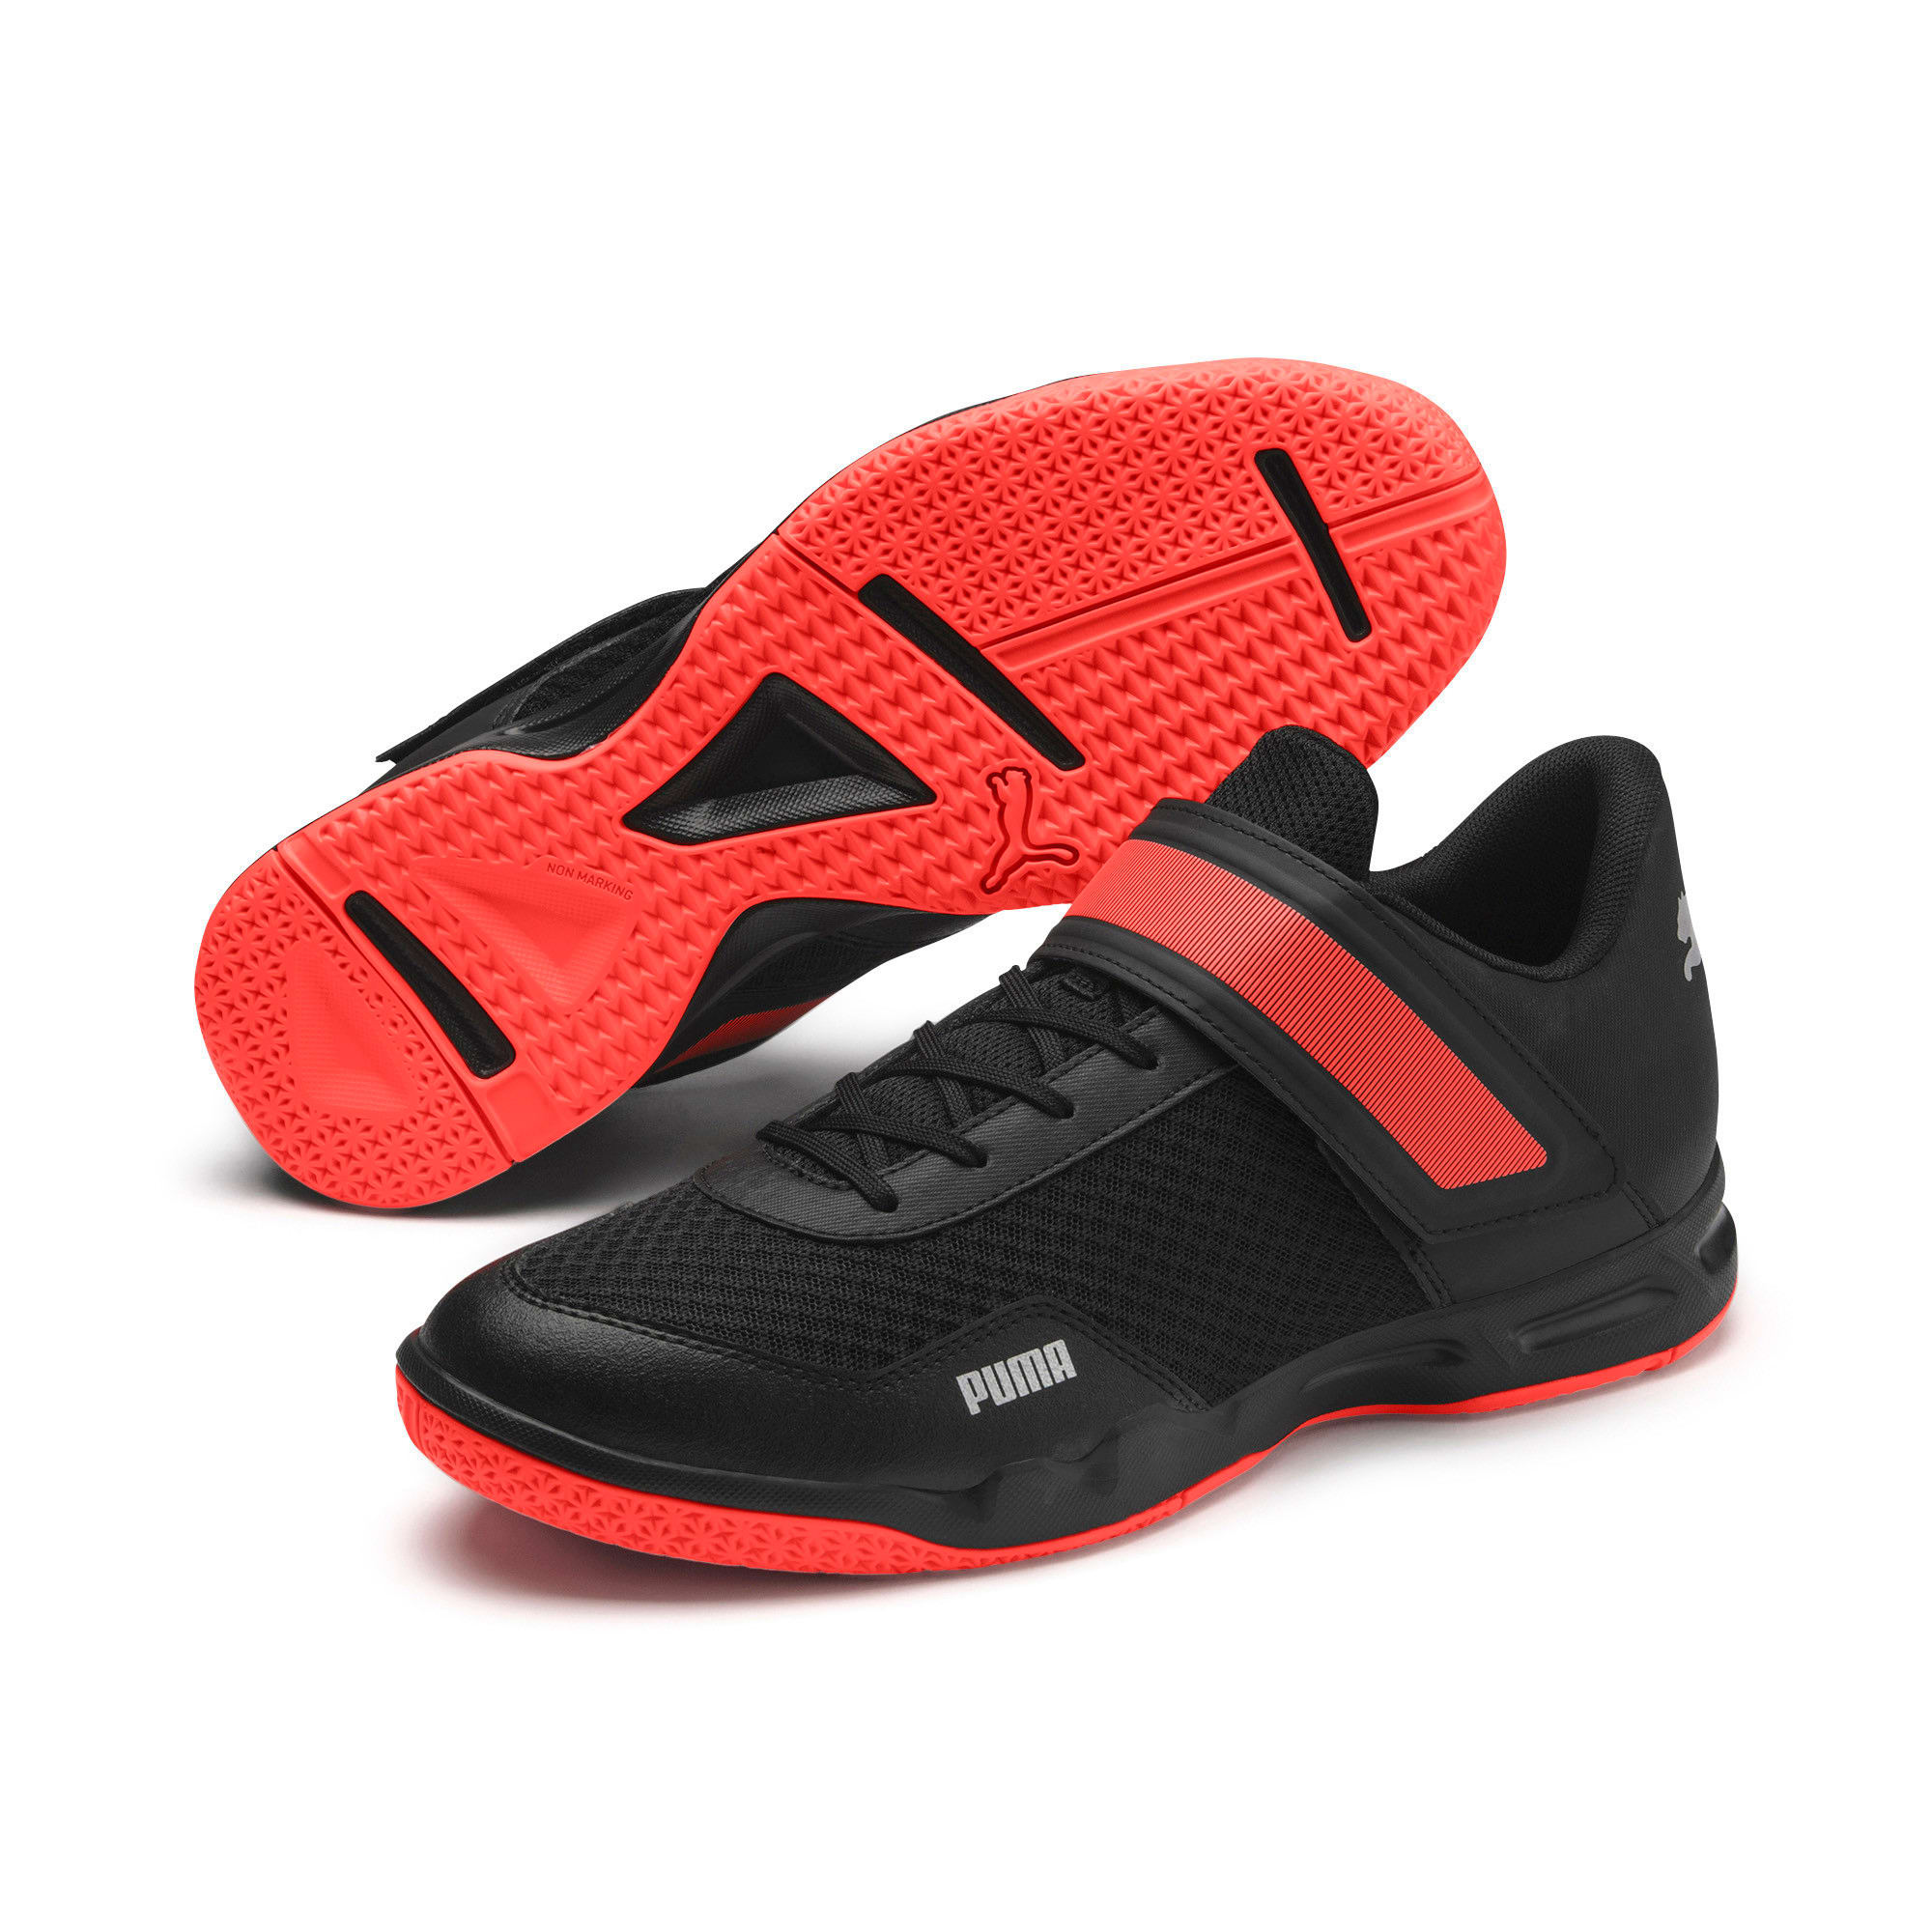 Thumbnail 8 of Rise XT 4 Men's Indoor Sports Trainers, Puma Black-Silver-Nrgy Red, medium-IND